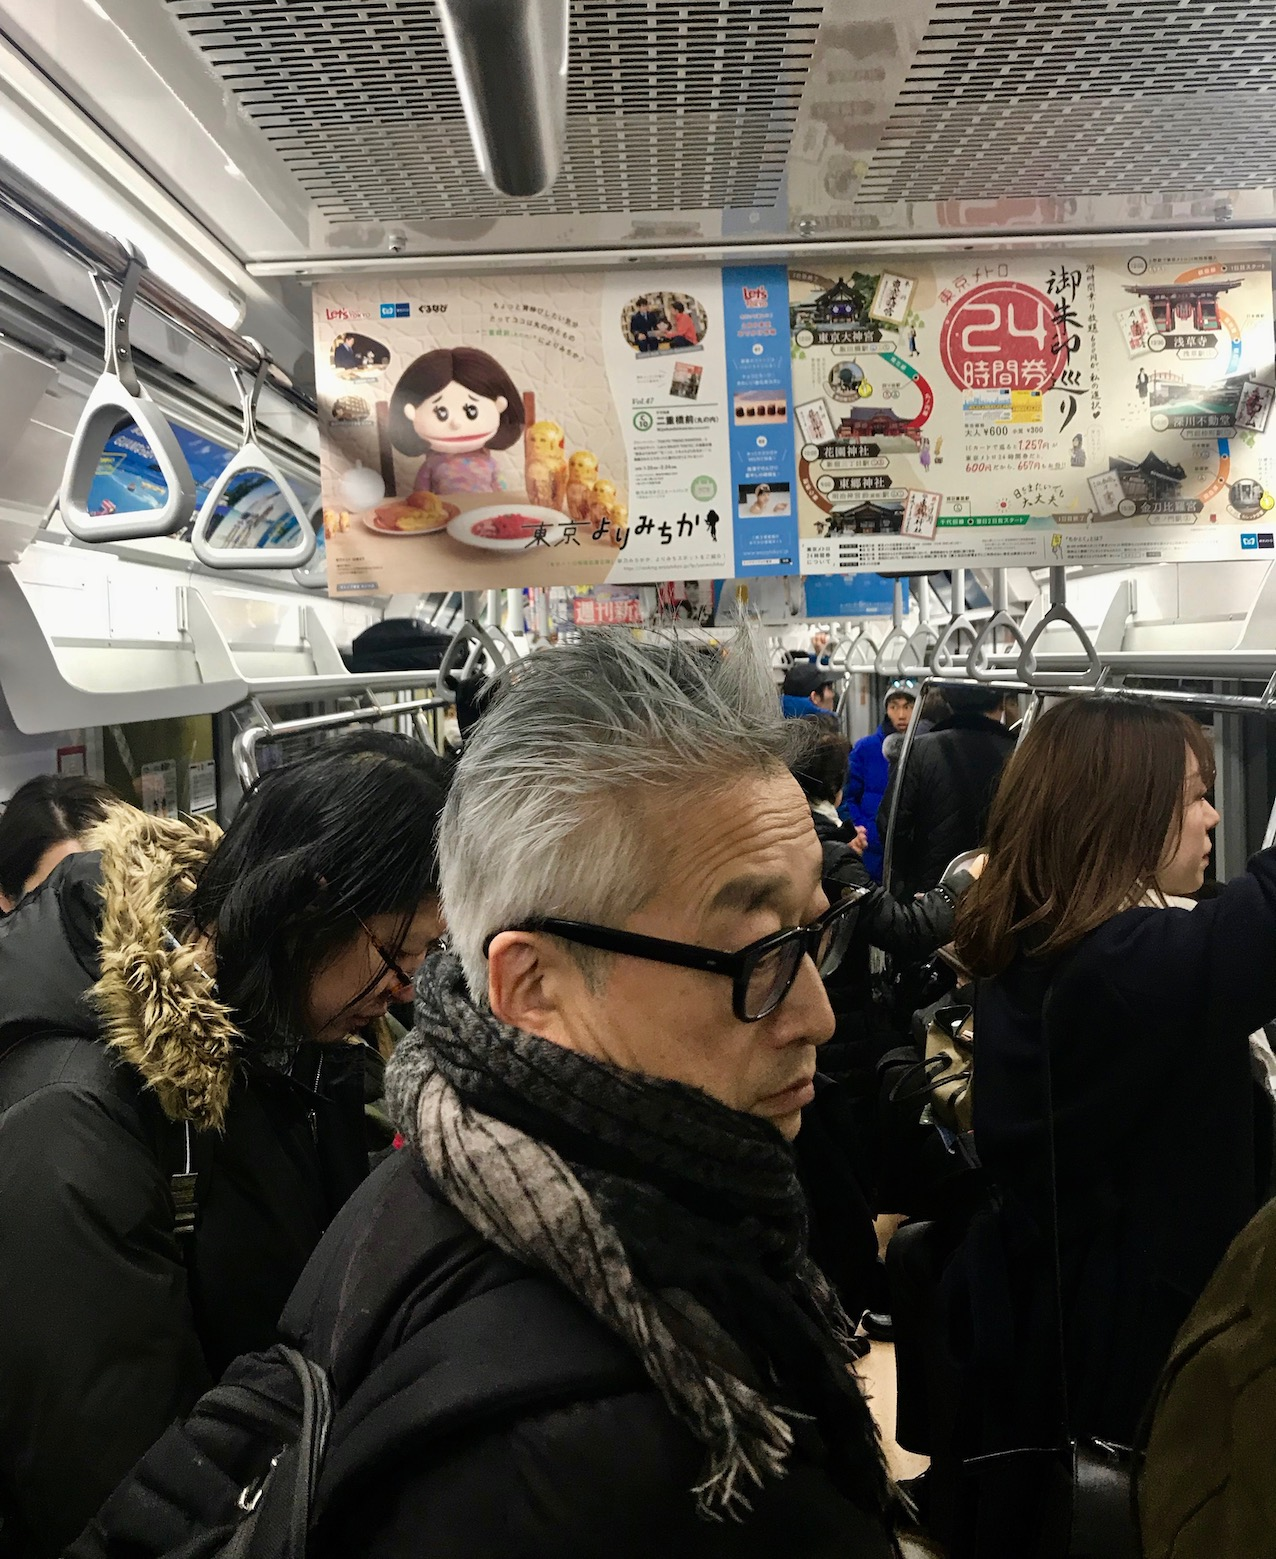 Busy carriage on The Tokyo Subway.